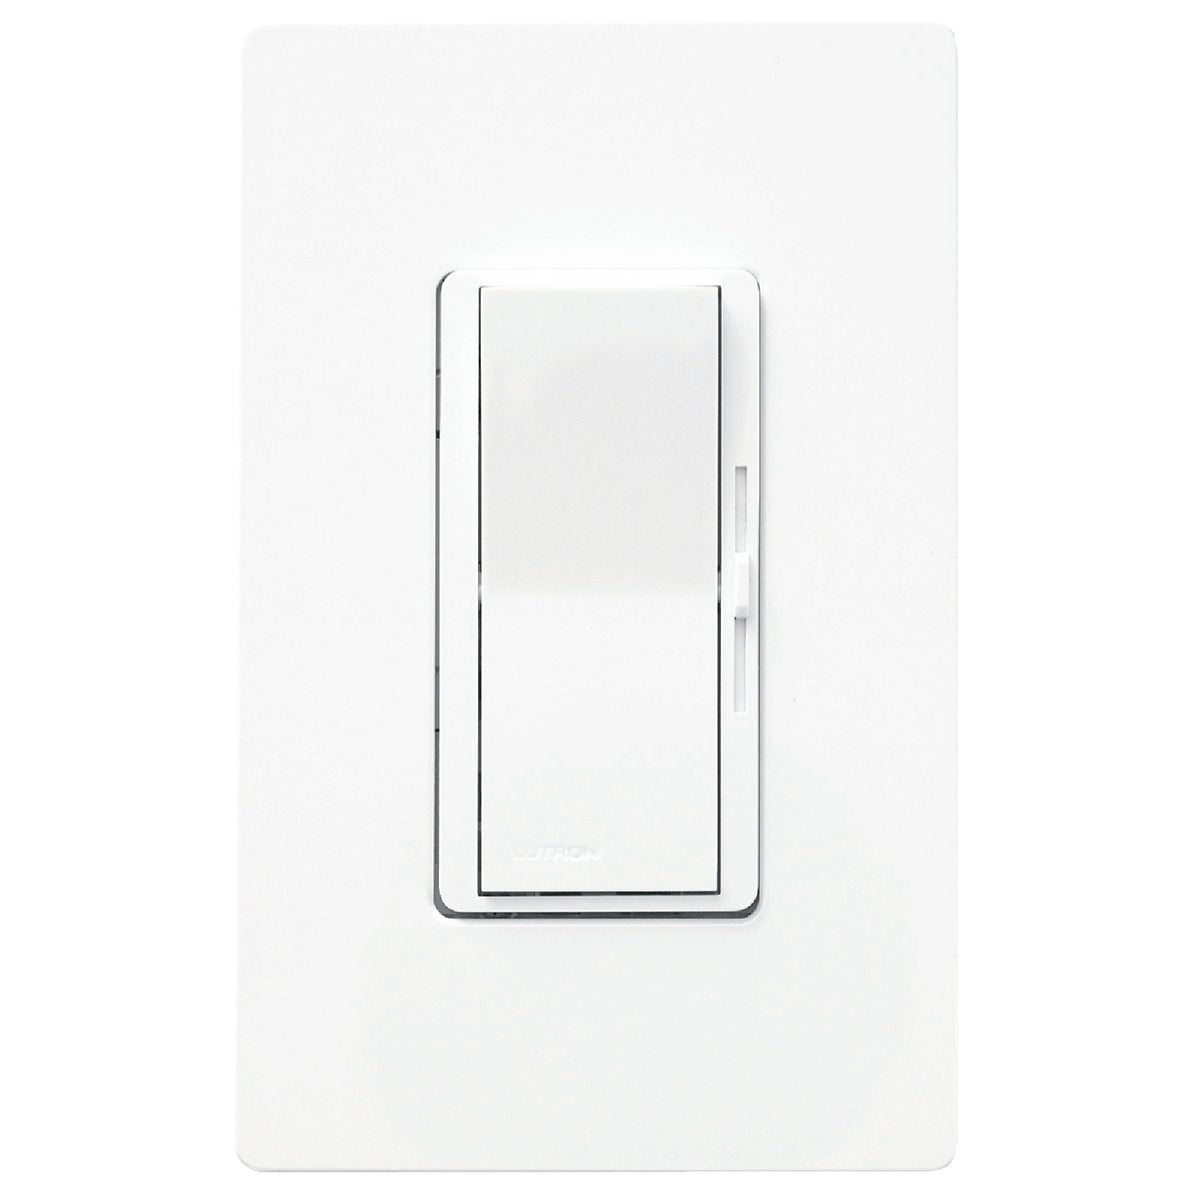 WH 3WAY SLIDE DIMMER - DVW-603PH-WH by Lutron Elect Co Inc